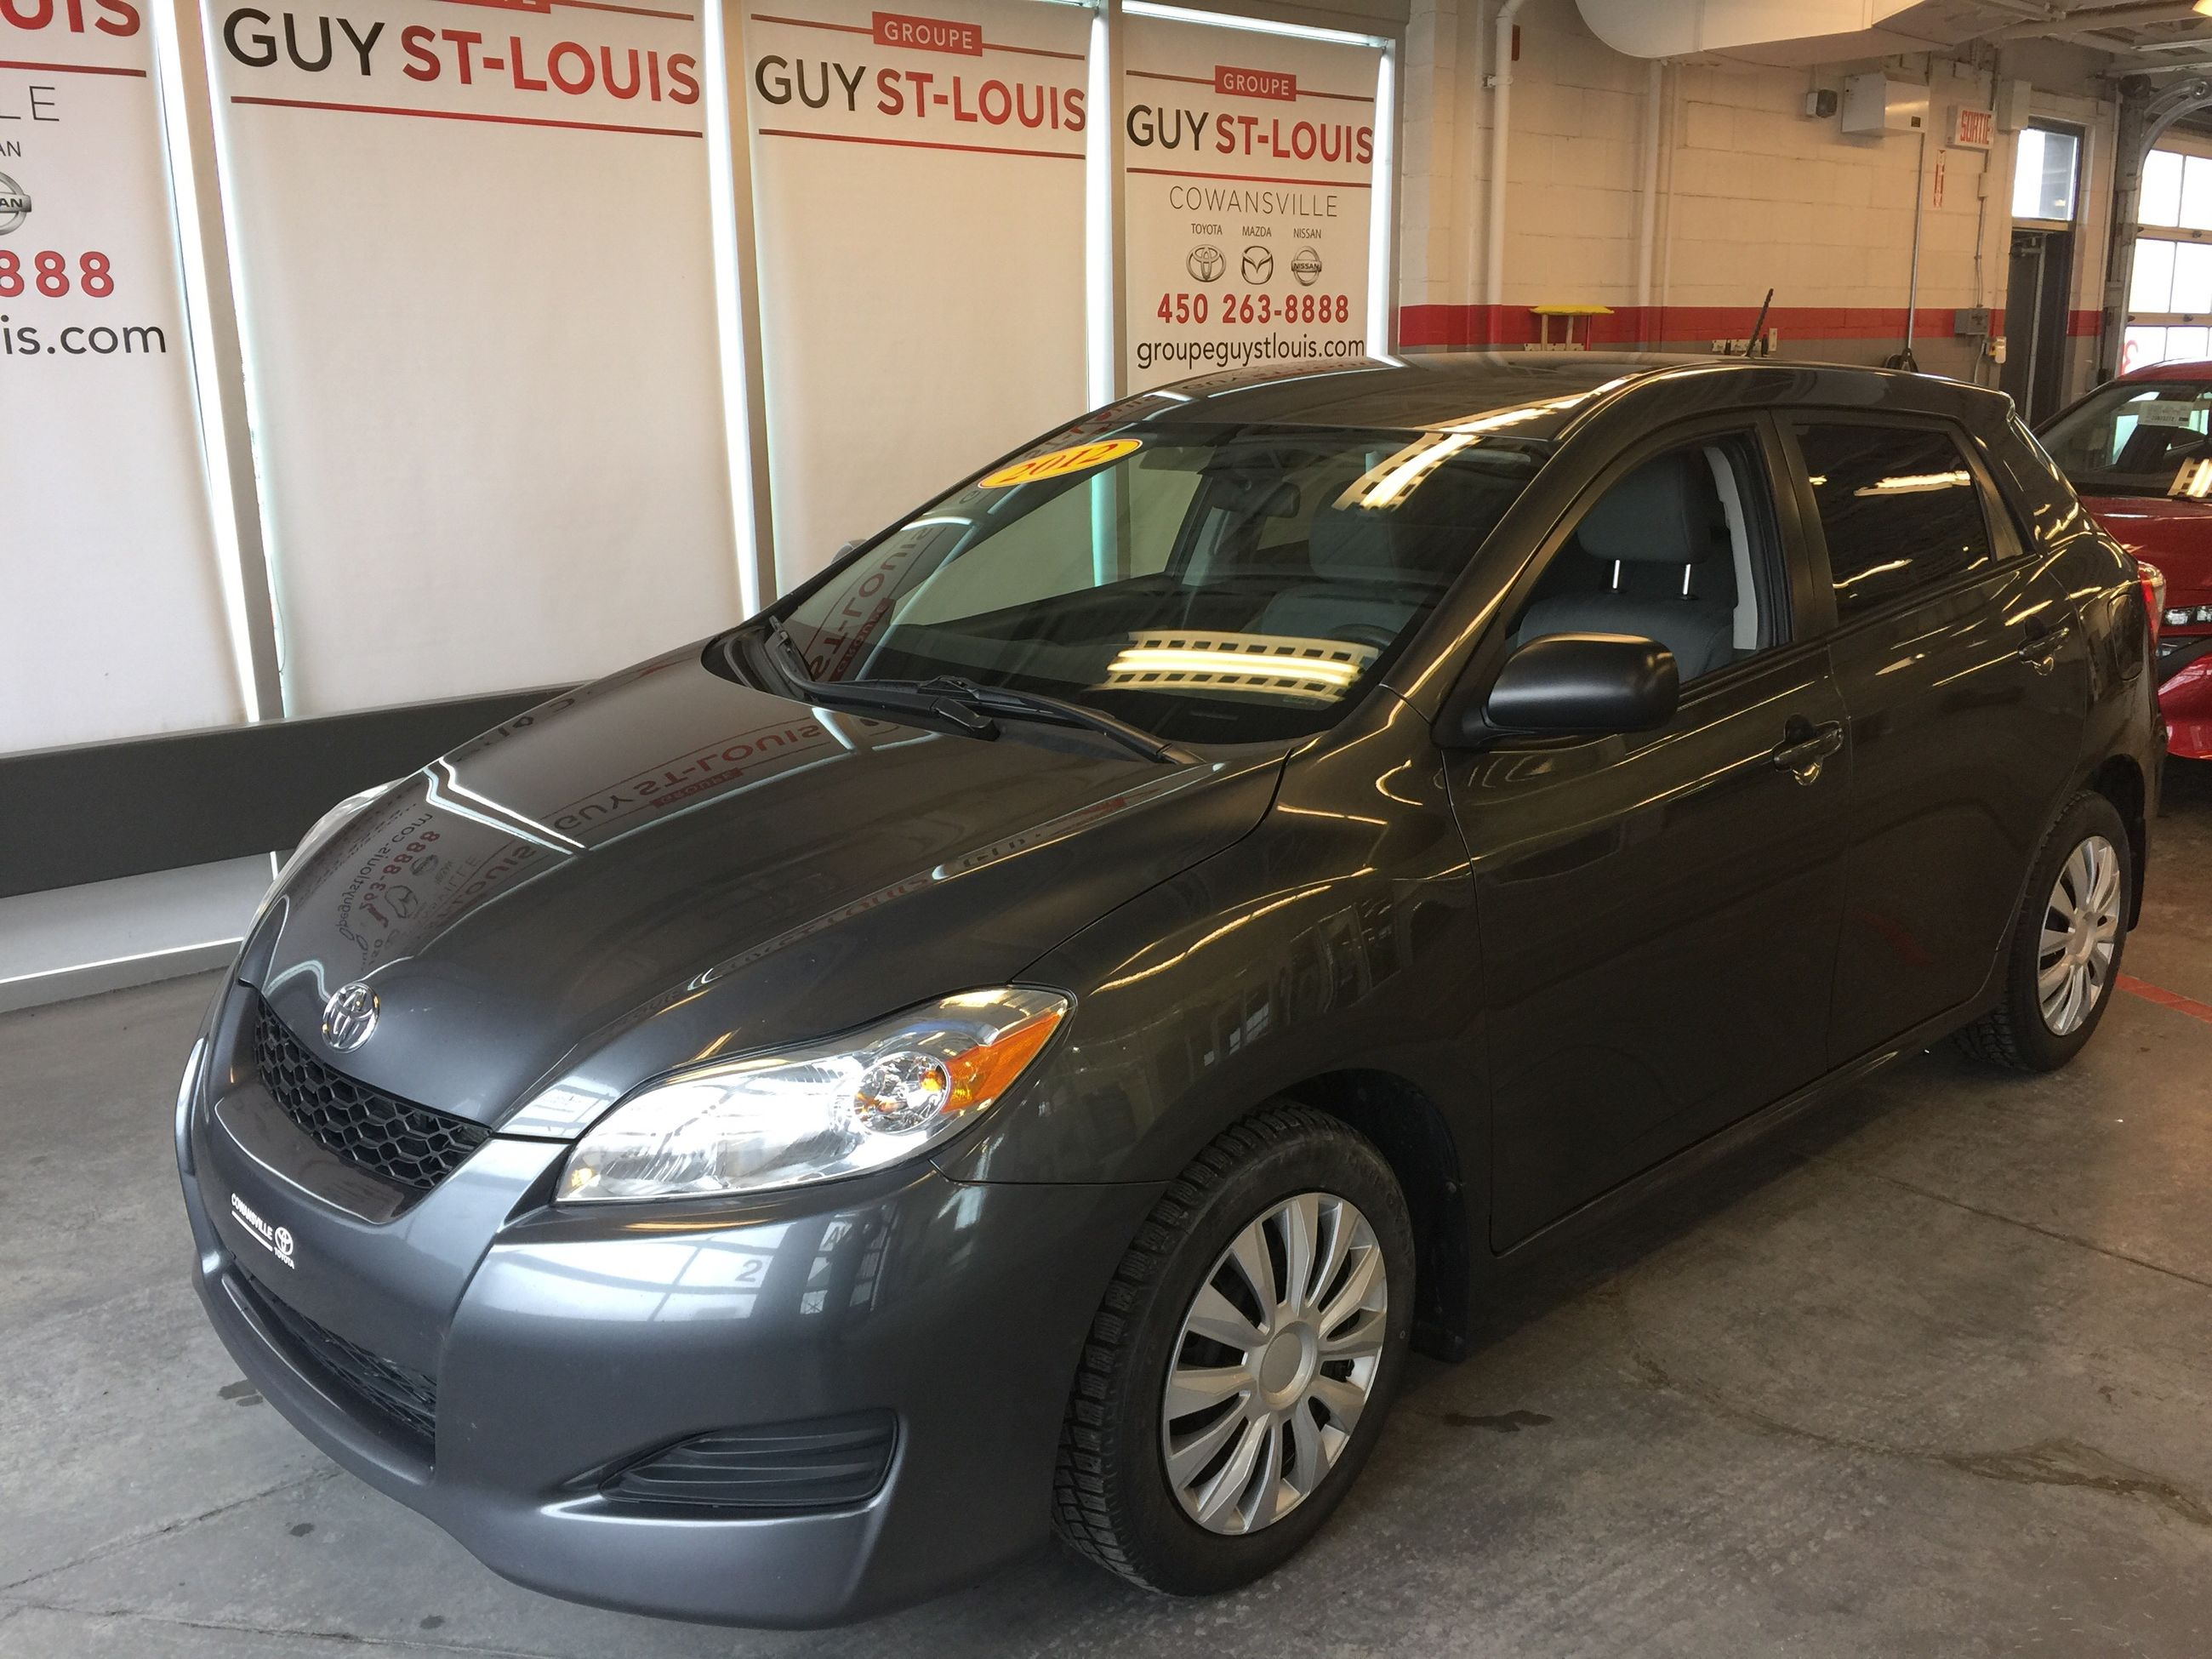 Pre-Owned 2012 Toyota Matrix Groupe électrique A/C in Cowanville -  Pre-Owned inventory - Occasion Cowansville in Cowanville, Quebec